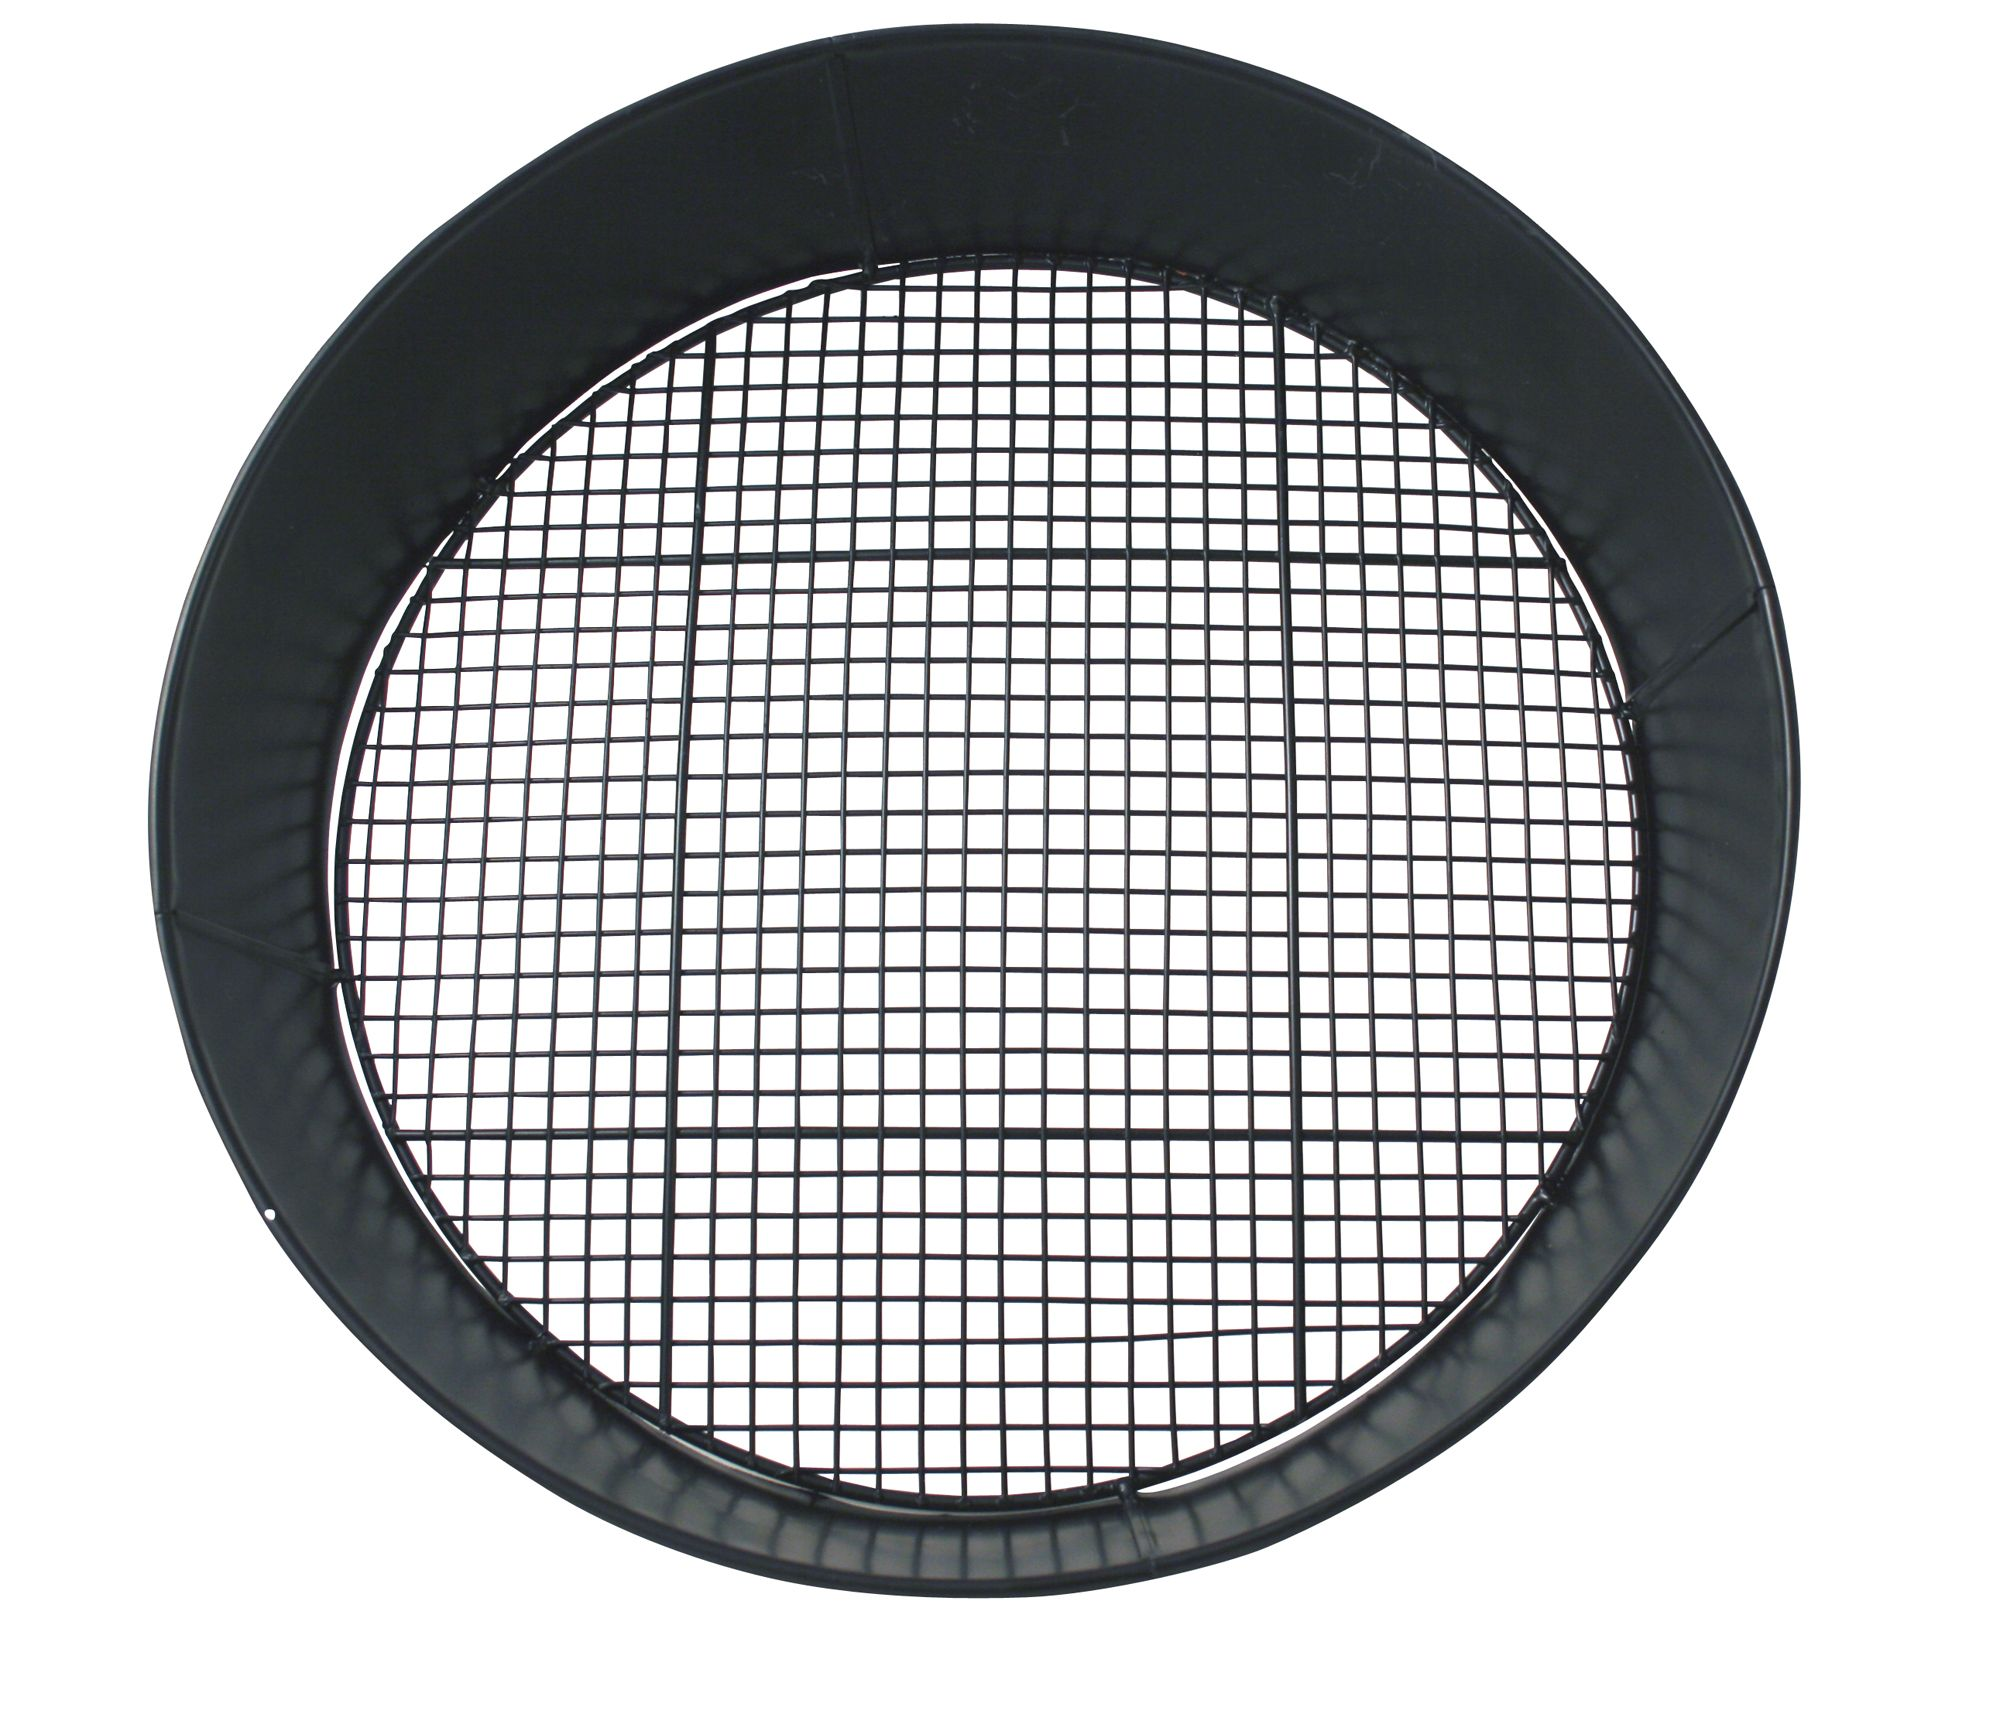 B Amp Q Metal Soil Sieve W 110mm L 390mm Departments Diy